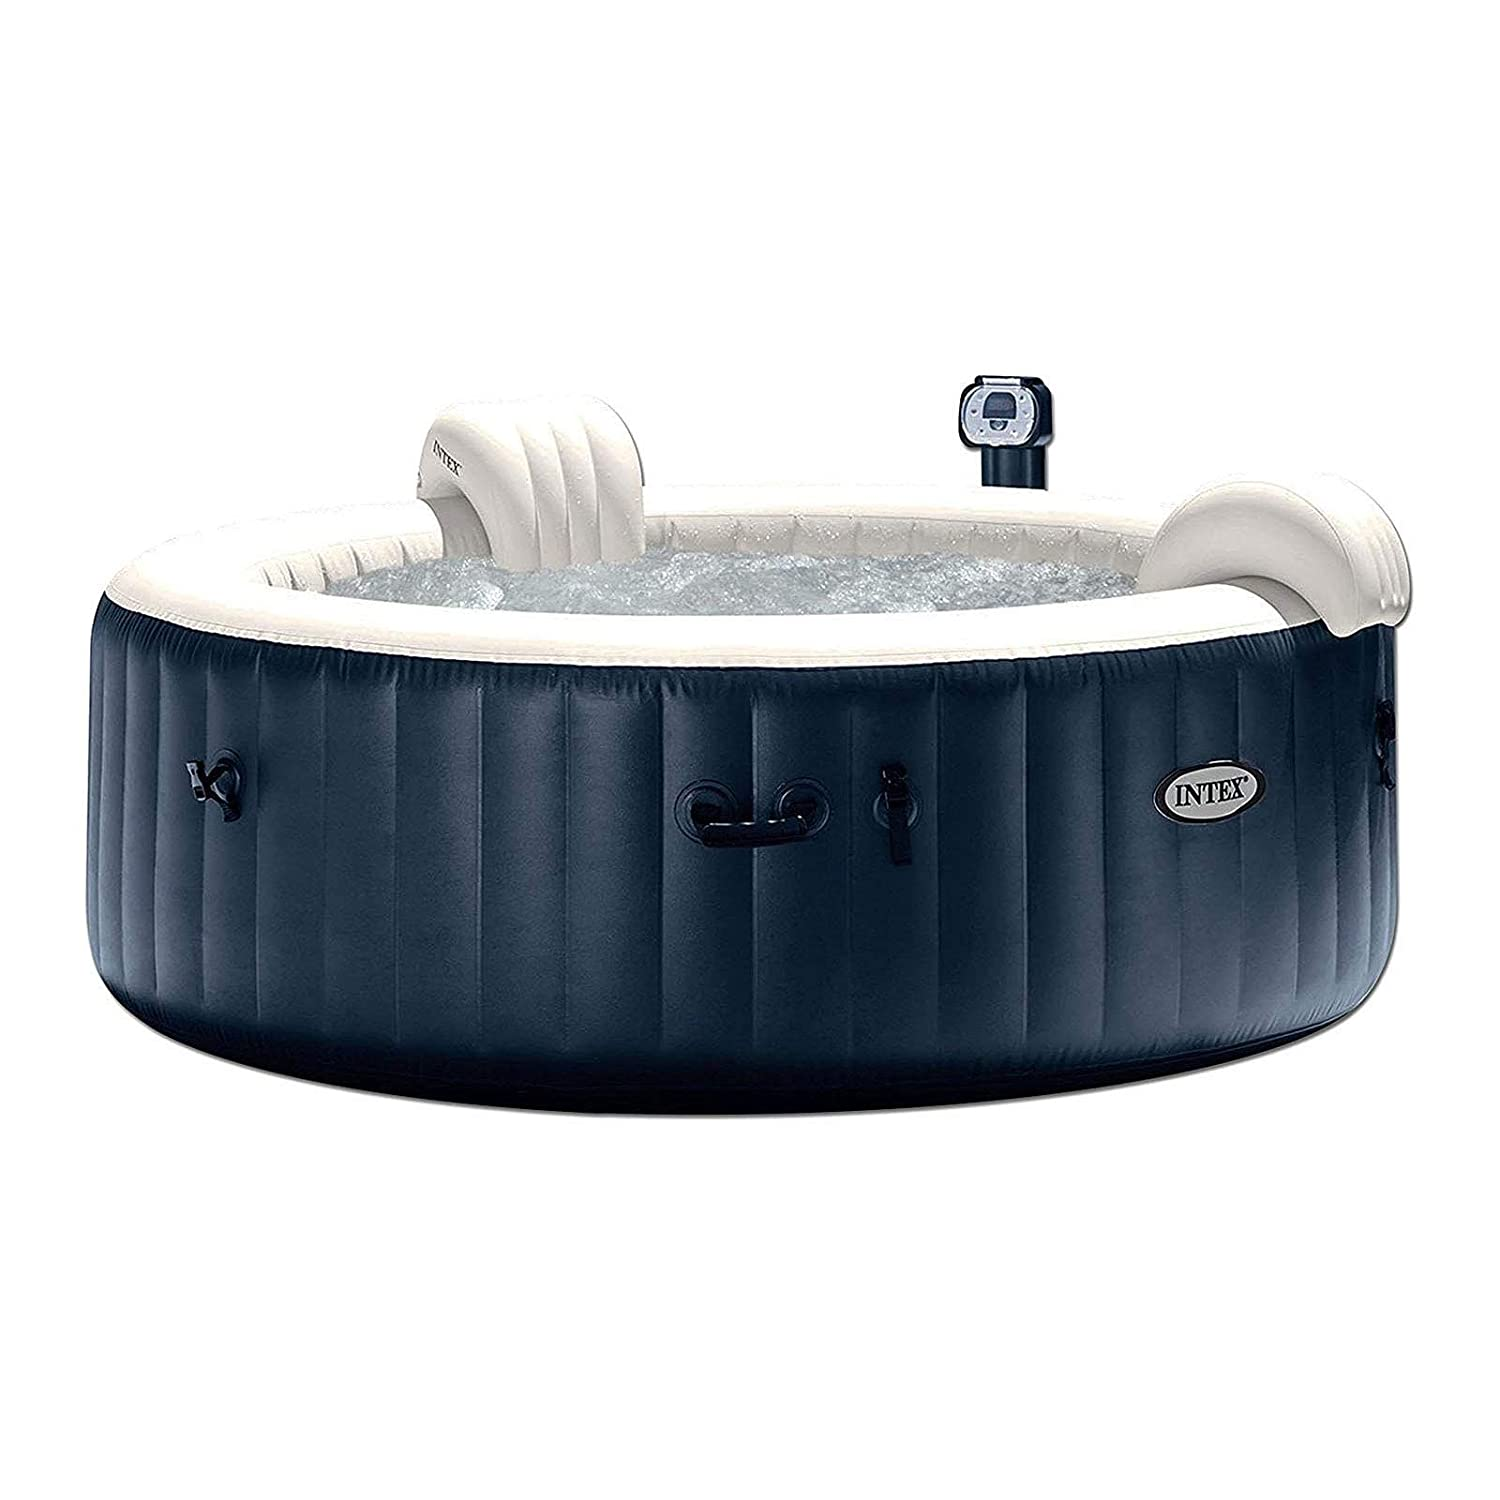 Intex 6-Person Hot Tub